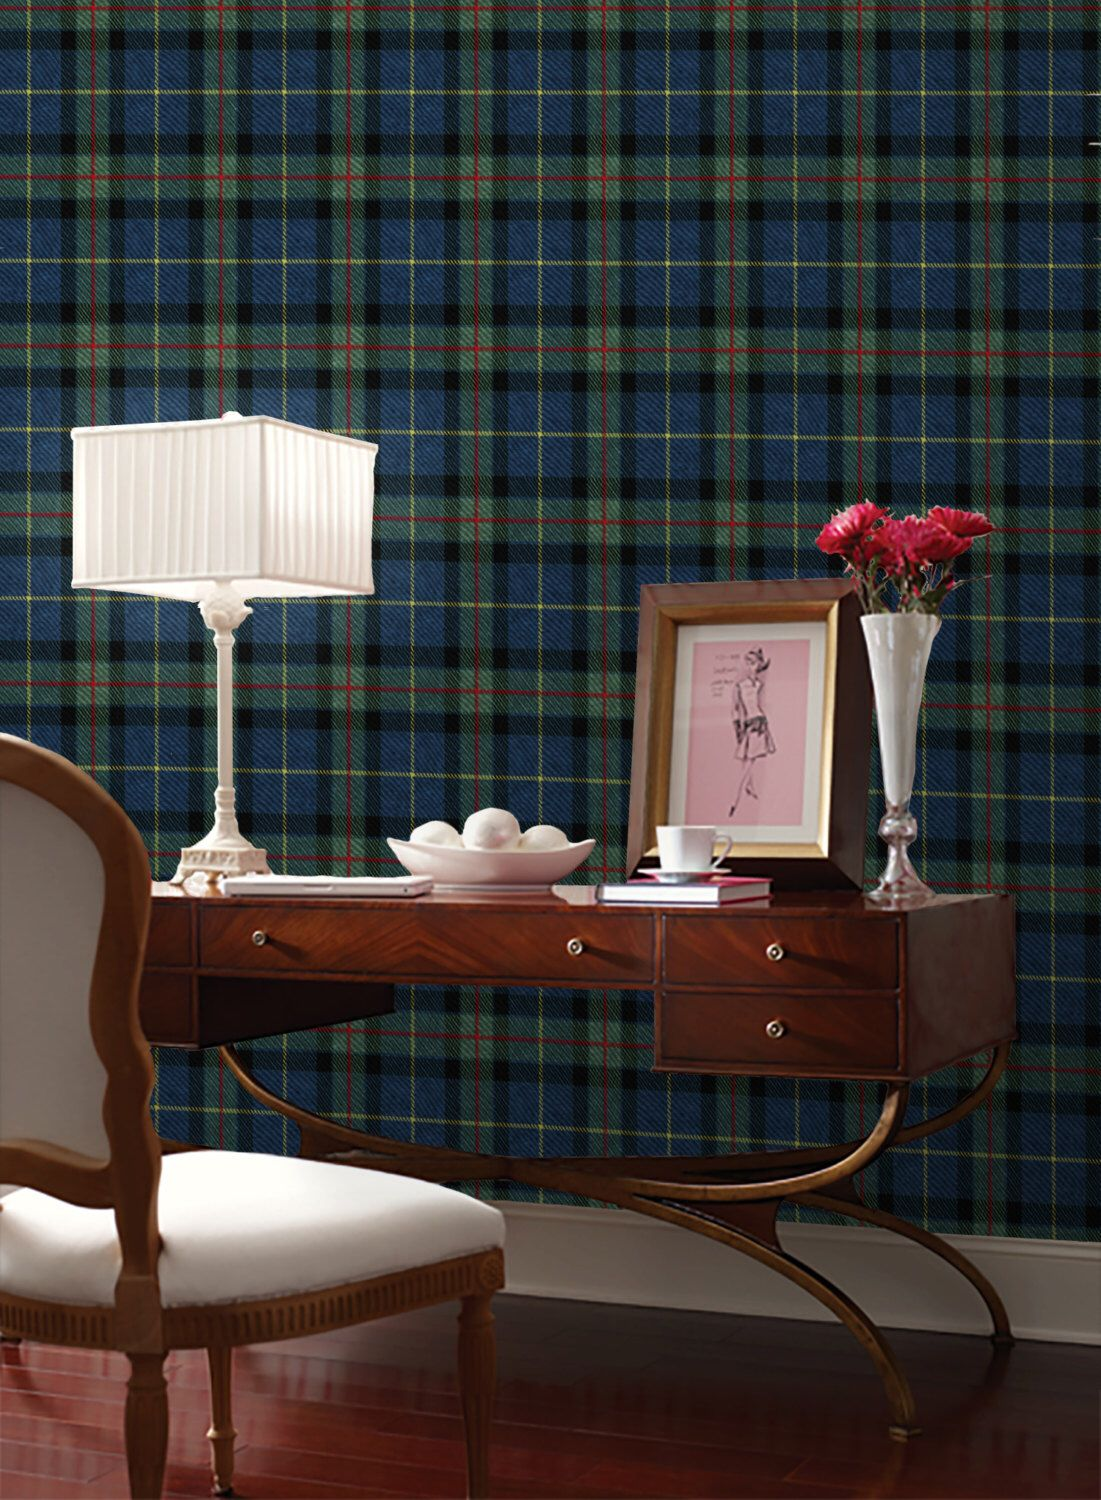 Tartan Easy To Apply Removable Peel U0027n Stick Wallpaper By Wallpaperie On  Etsy Https: